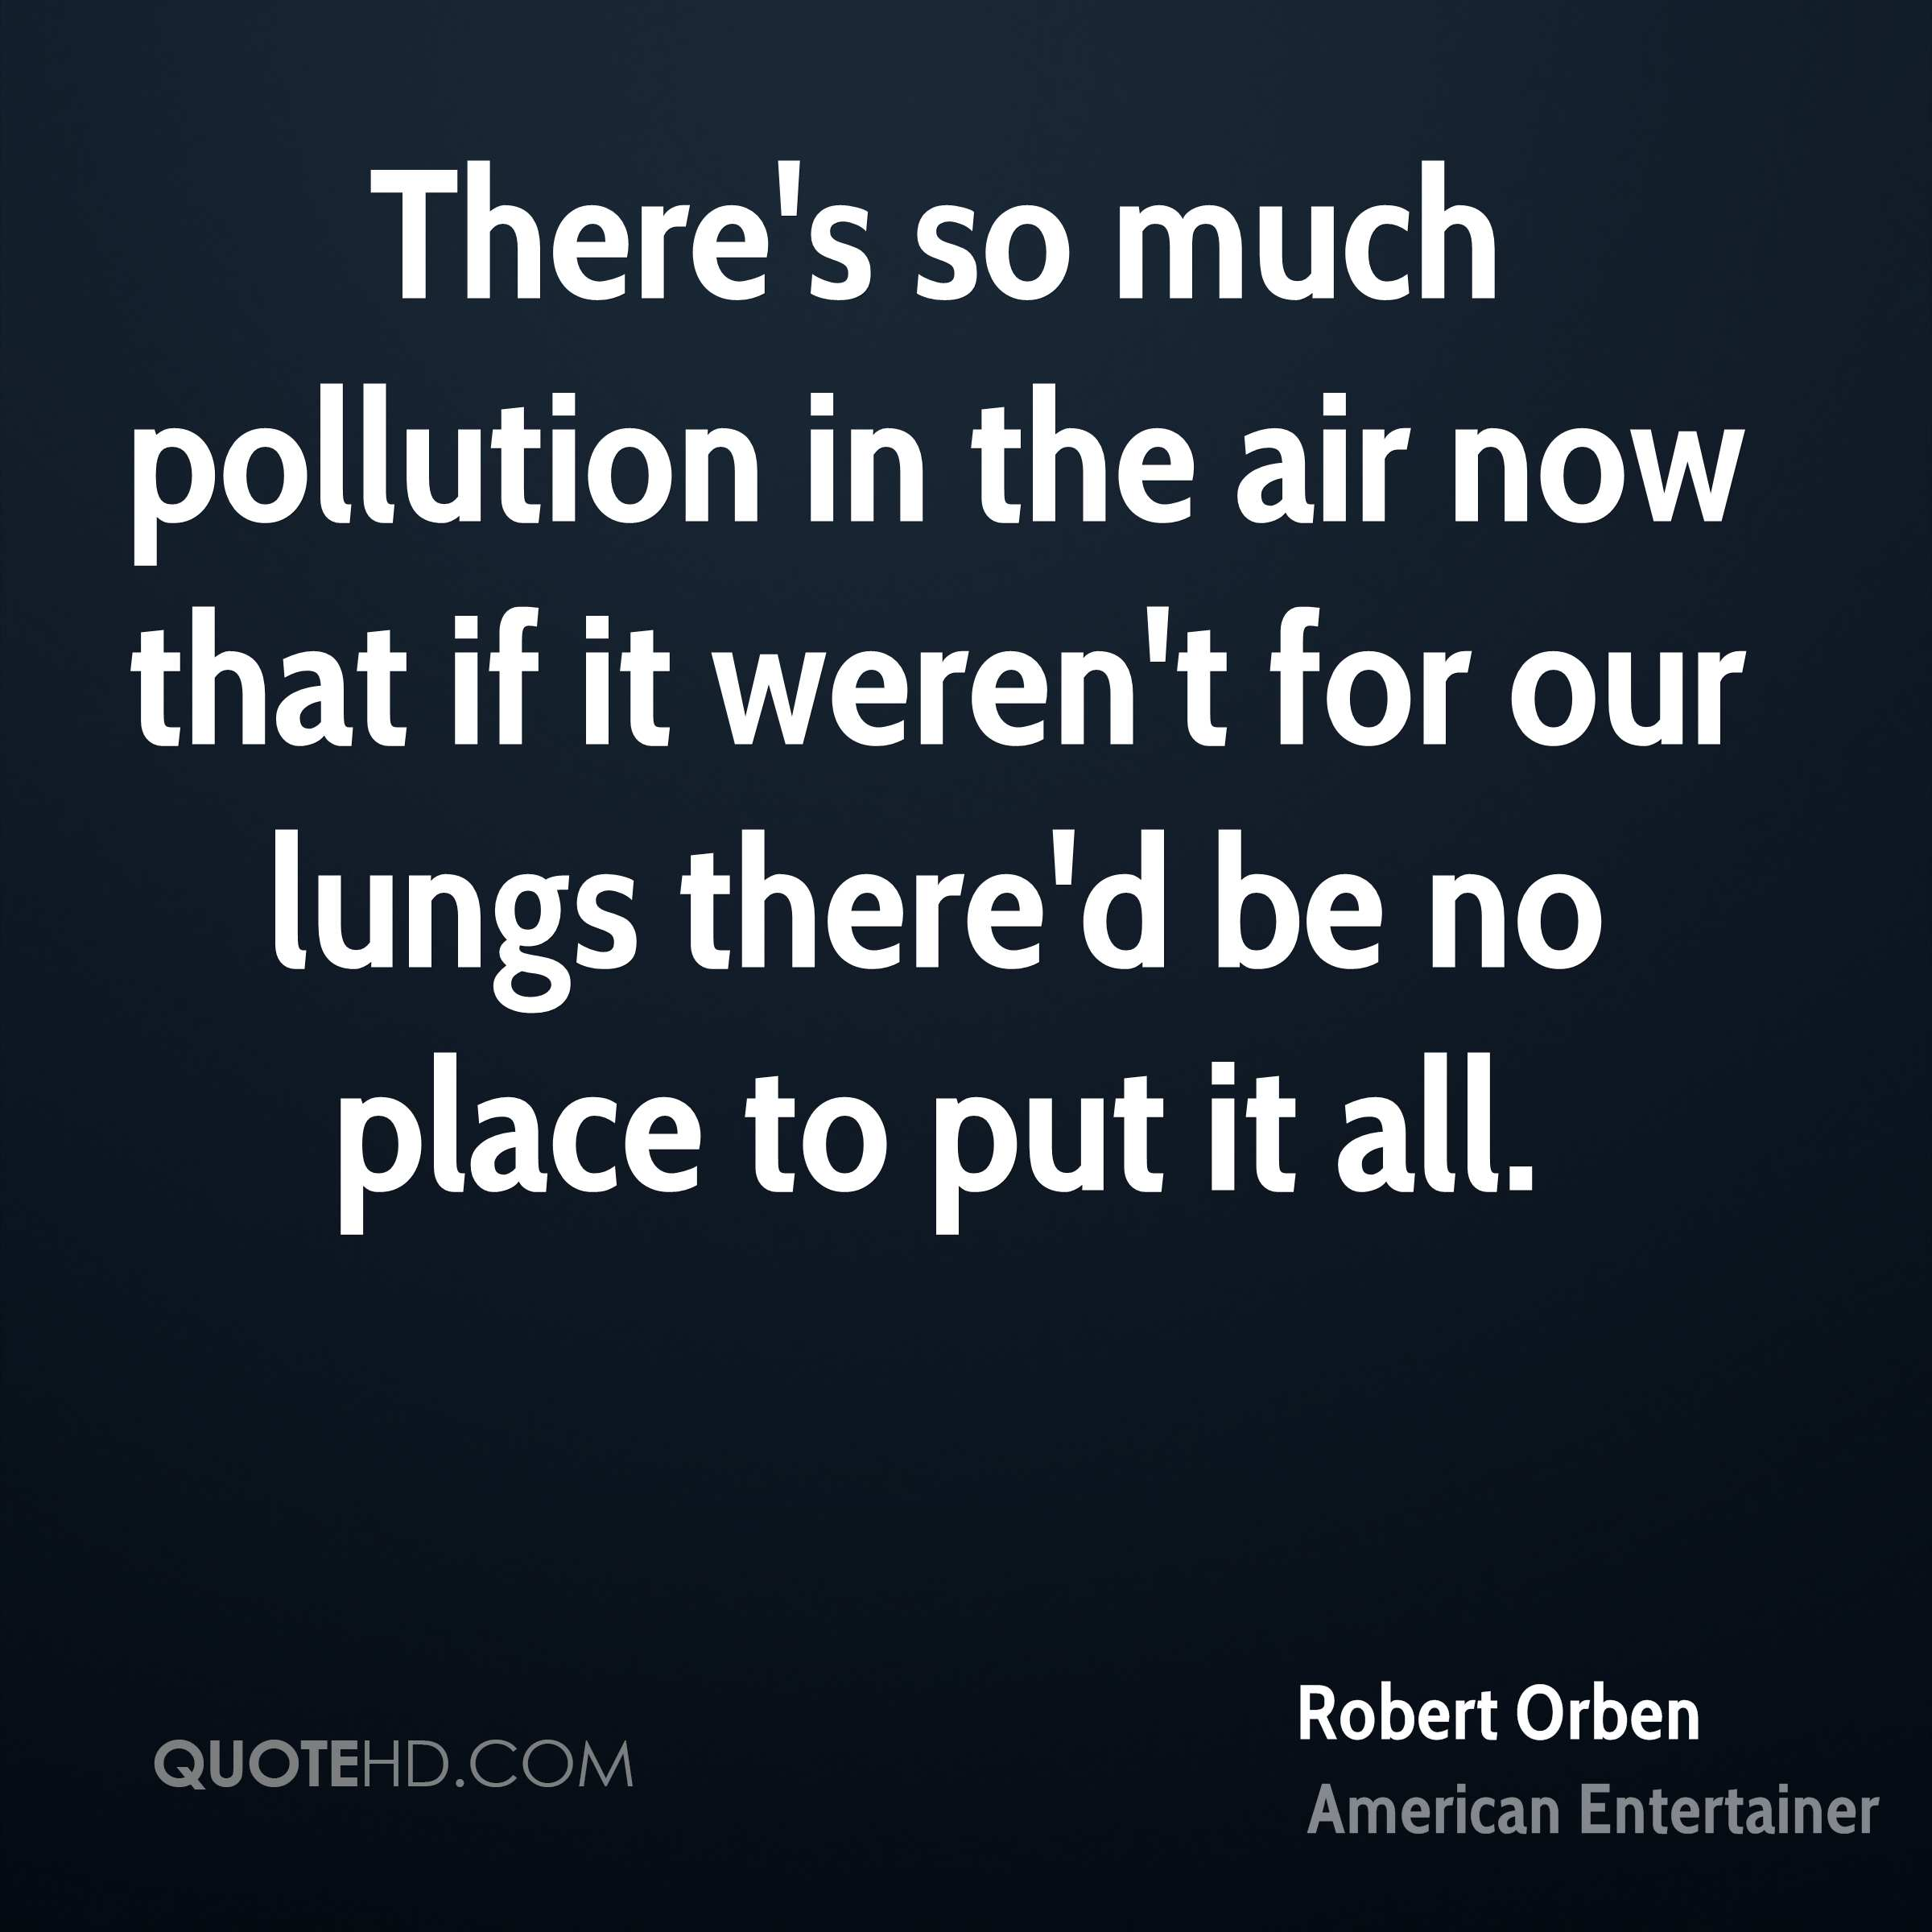 There's so much pollution in the air now that if it weren't for our lungs there'd be no place to put it all.